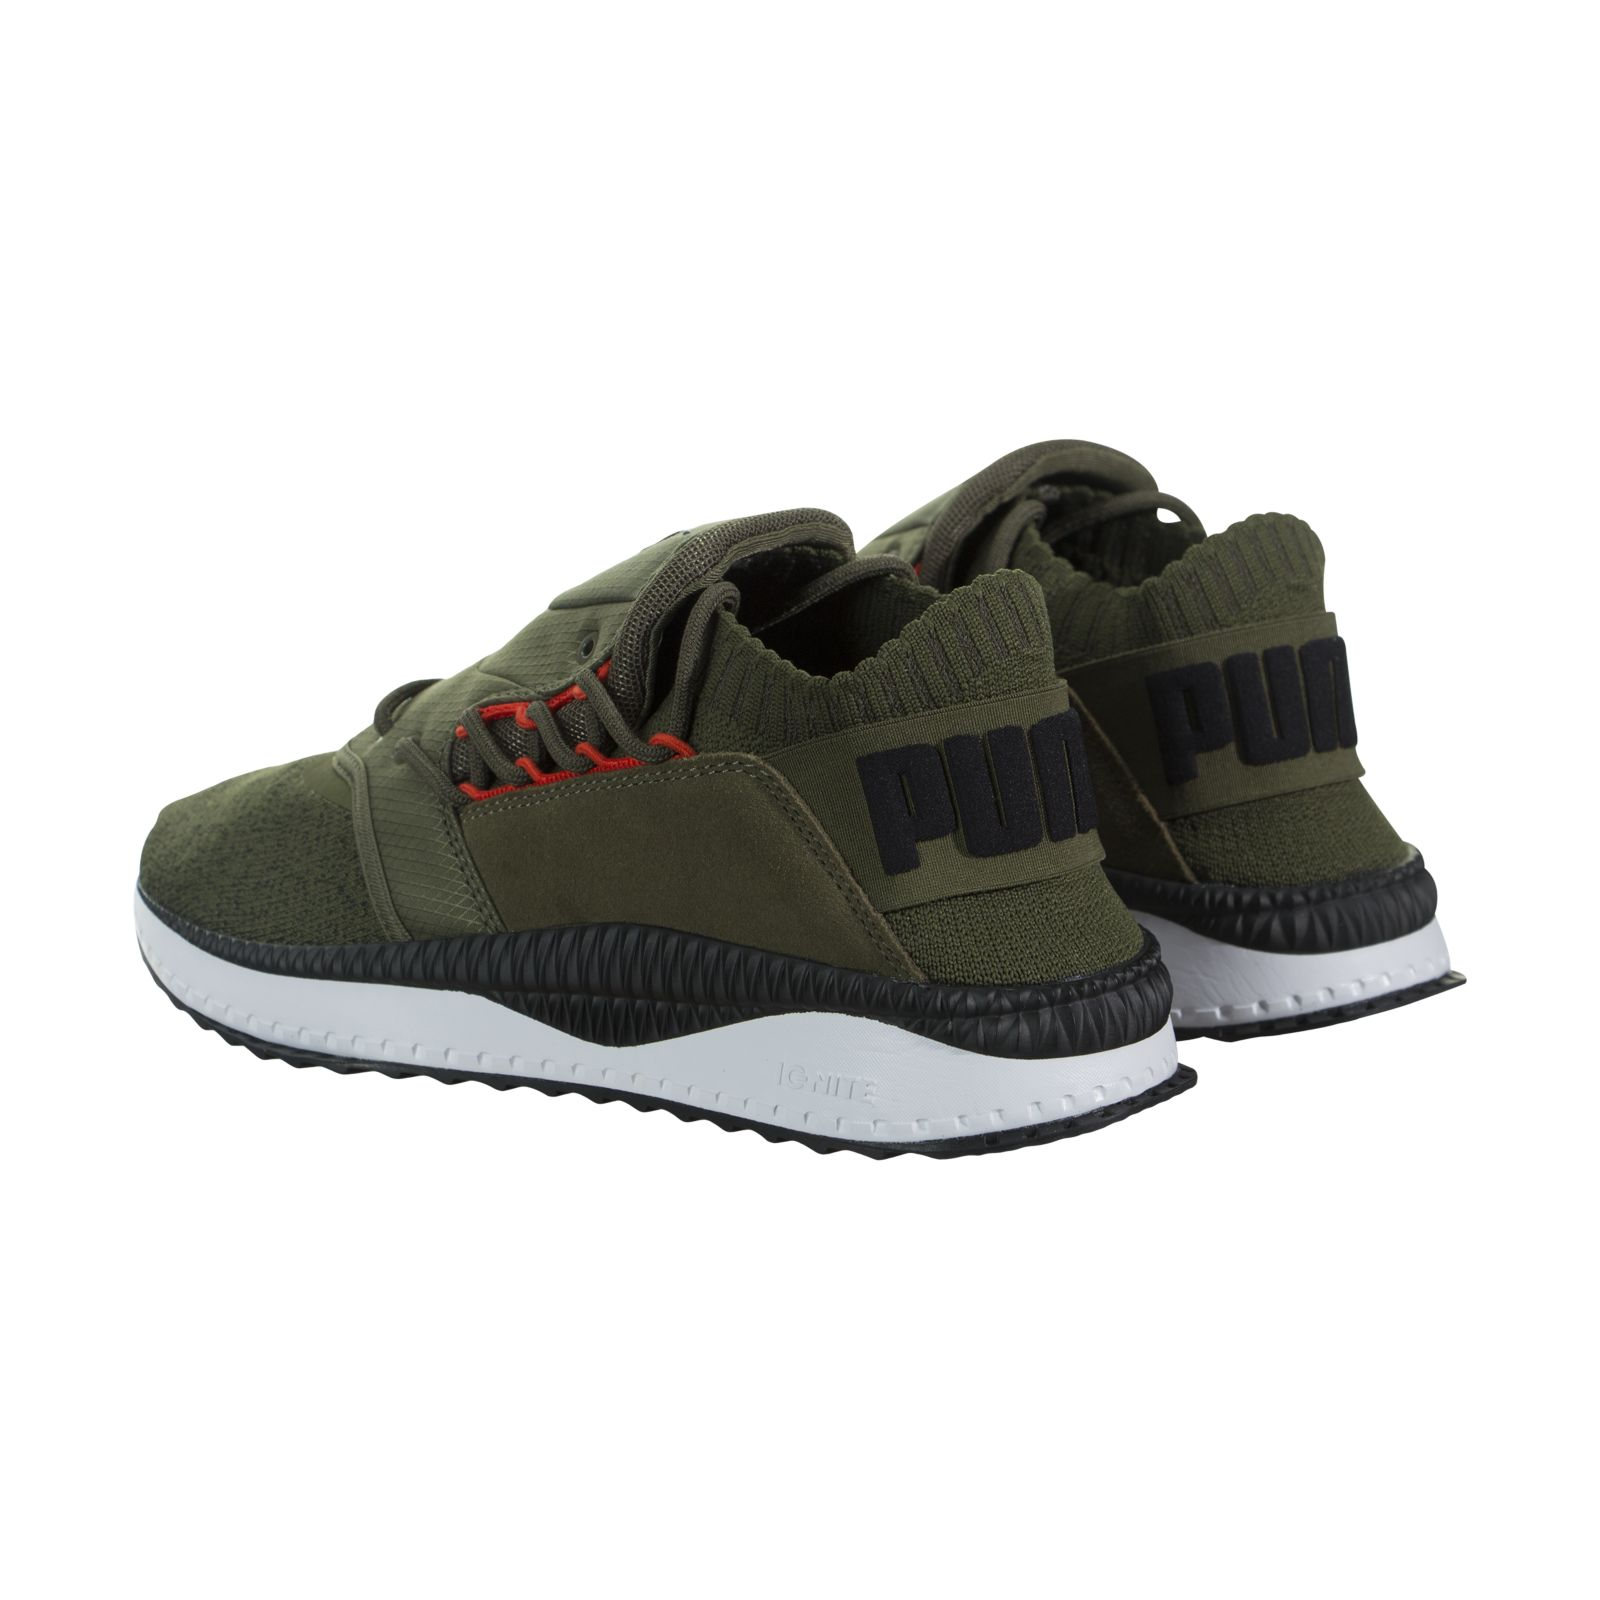 c2011066997e6f PUMA Tsugi Shinsei Nocturnal Sneaker Men Low Boot Evolution Multi 2 ...